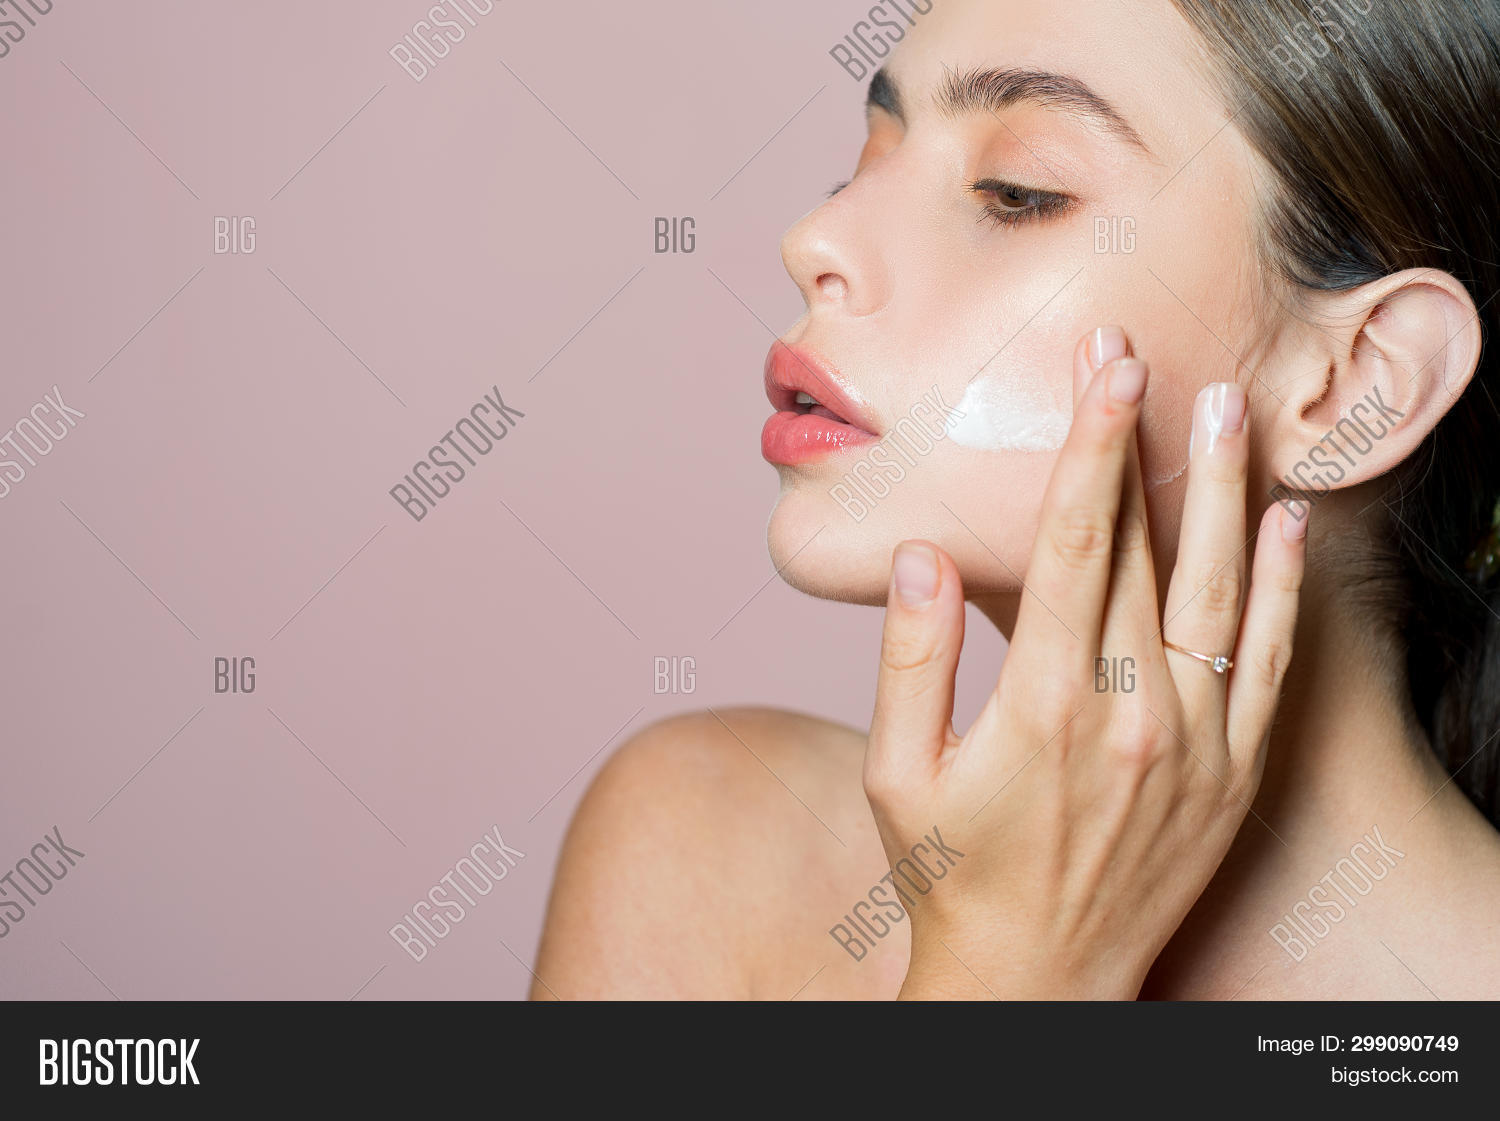 beautiful,beauty,care,concept,cosmetics,cream,elastic,elasticity,face,facial,female,femininity,fresh,freshness,girl,good,health,healthy,her,hydrated,hygiene,keep,mask,moisturizing,natural,perfect,pretty,product,pure,regularly,relax,salon,skin,smooth,soft,spa,spreading,taking,therapy,treatment,wellbeing,wellness,woman